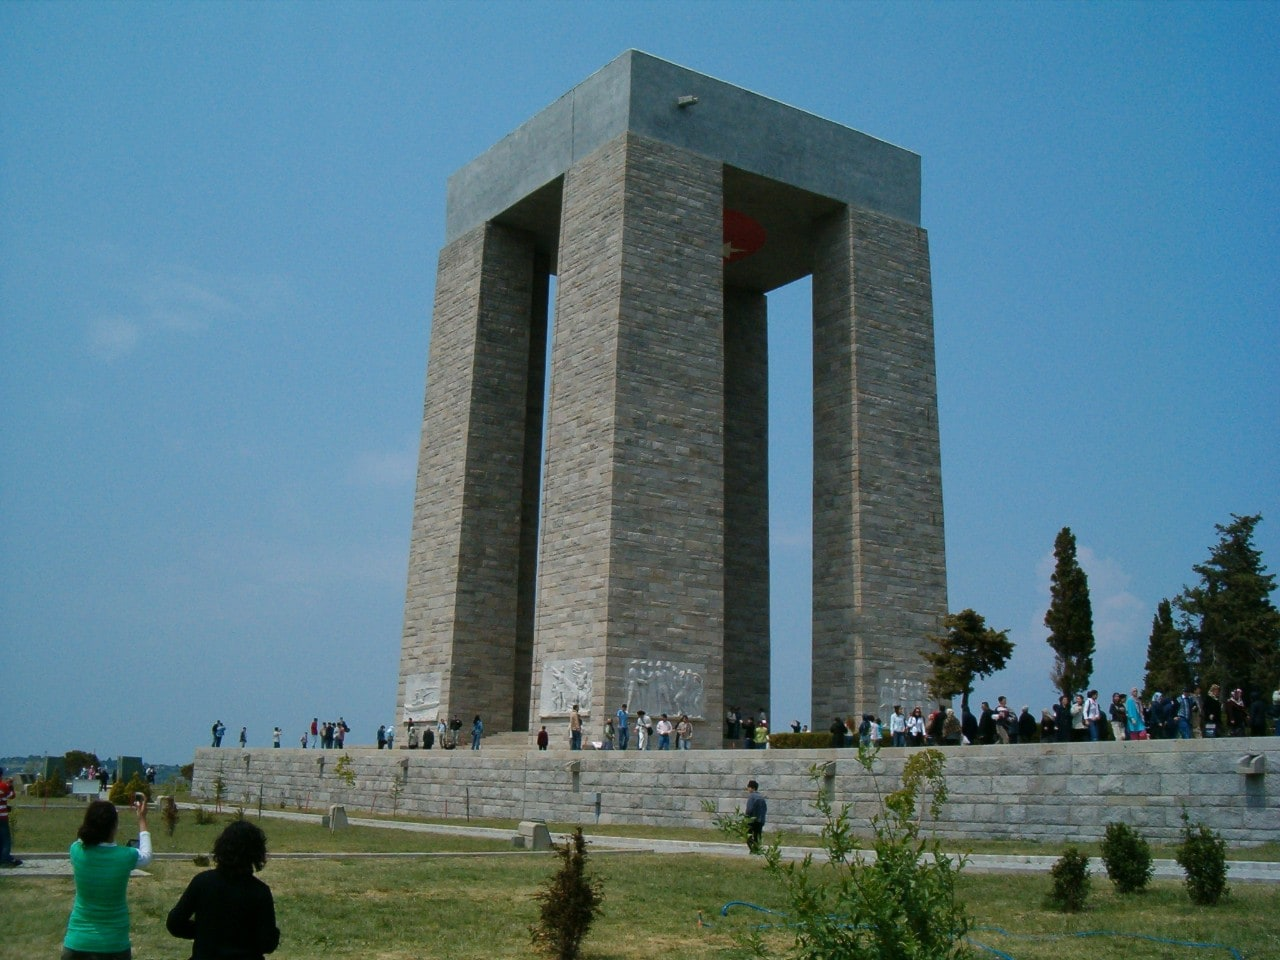 The Çanakkale Martyrs' Memorial in Turkey. Image: Wikimedia Commons.